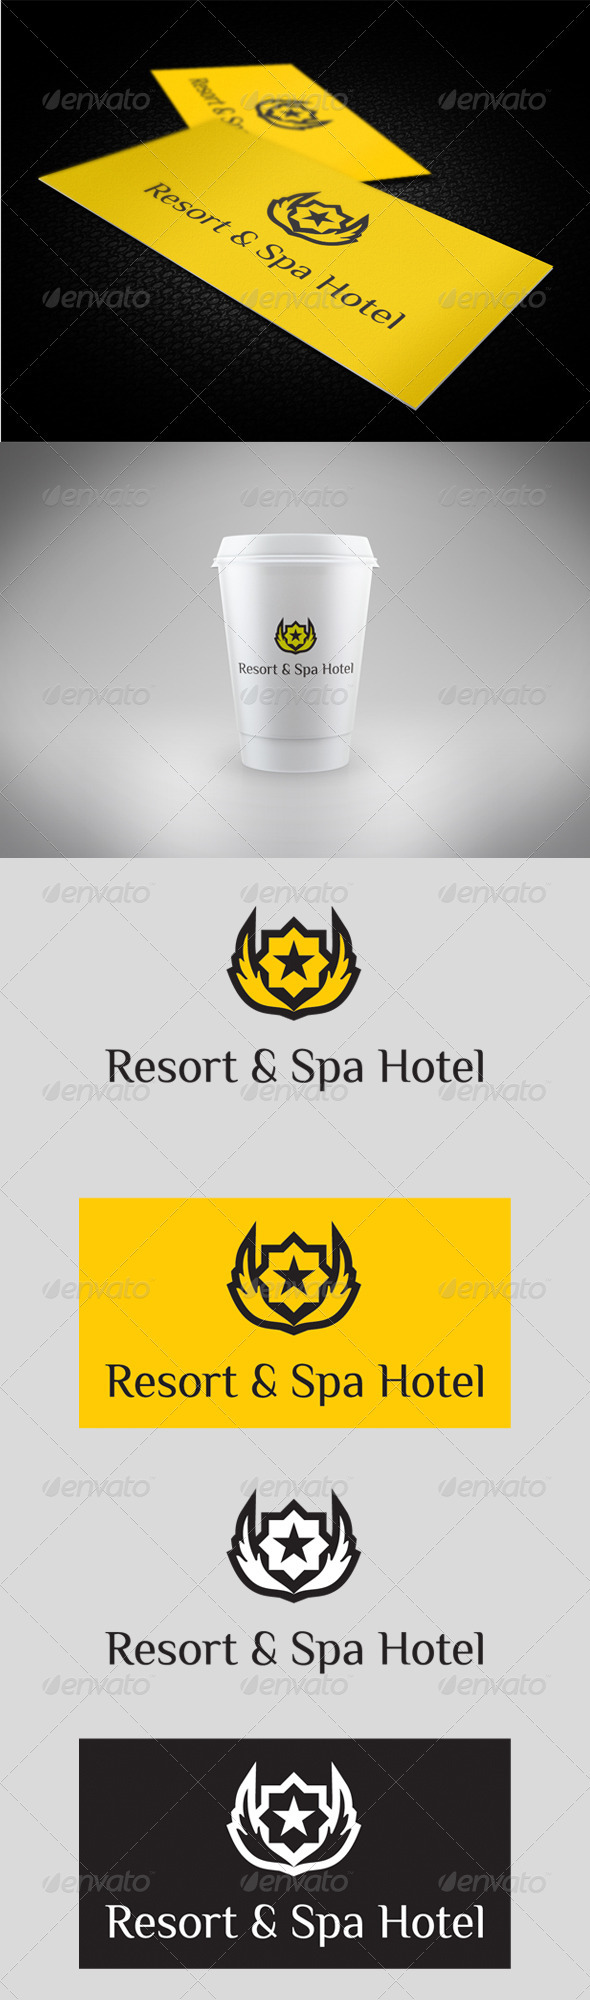 GraphicRiver Resort & Spa Hotel Logo 3533852